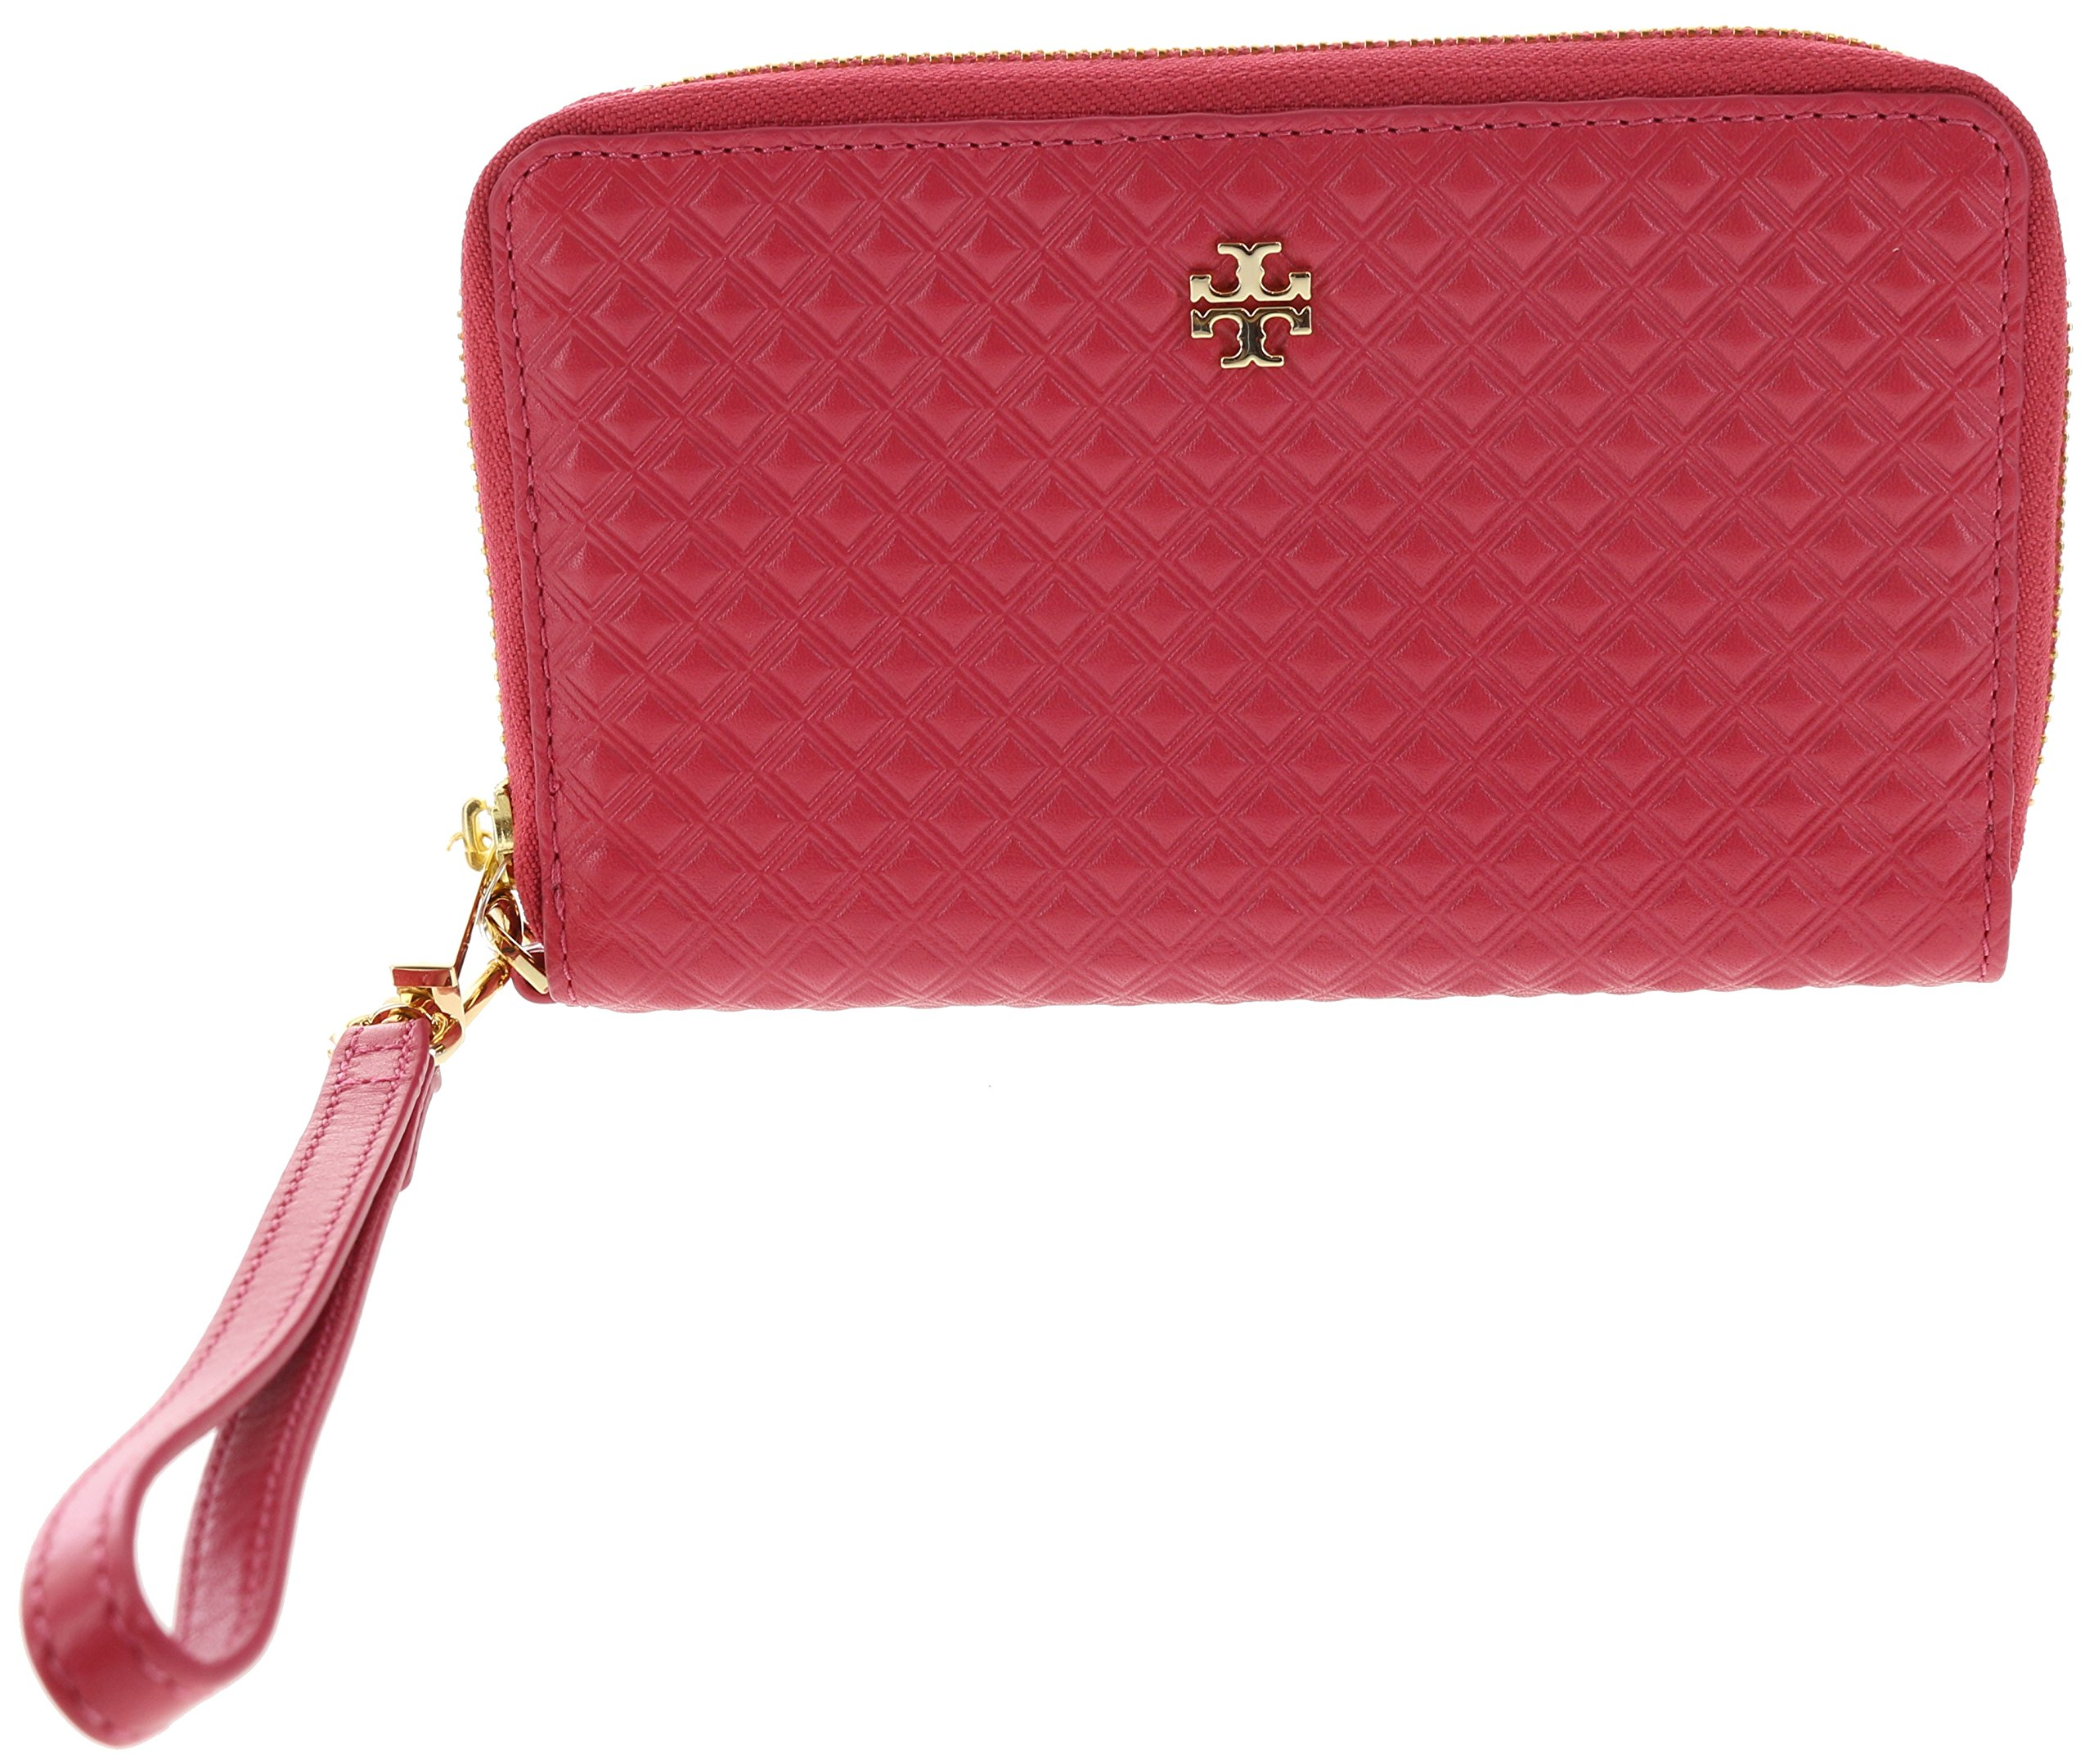 Tory Burch Marion Embossed Leather Smartphone Wristlet, Style No. 30591 (Dark Peony) by Tory Burch